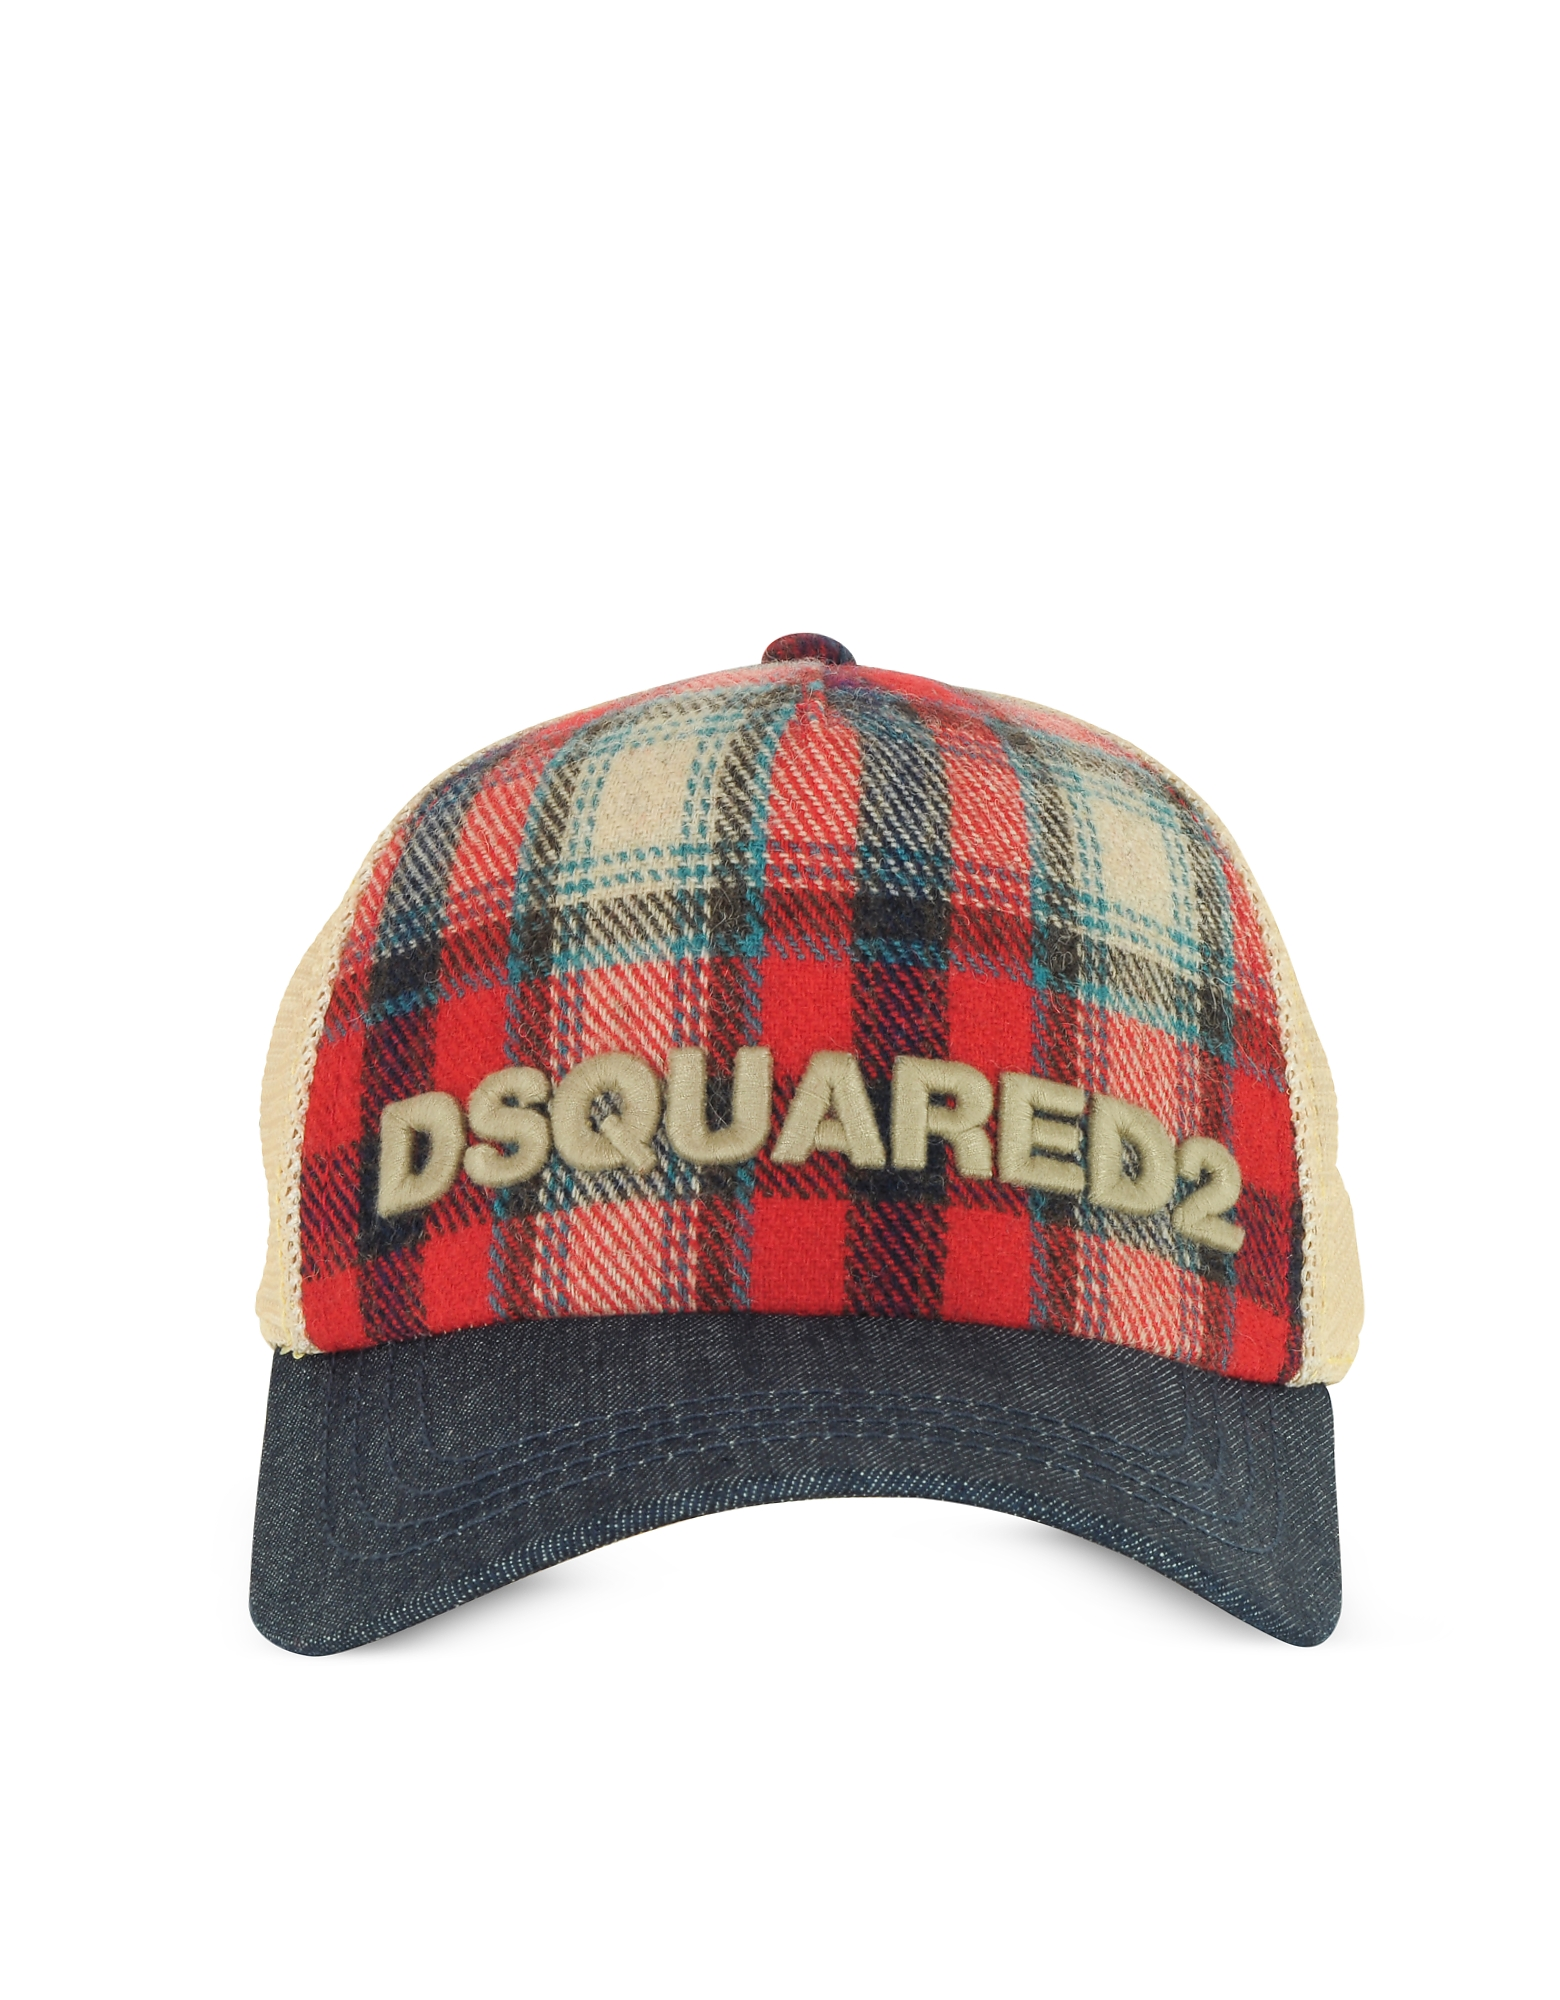 DSquared2 Men's Hats, Red Checked Wool Blend and Denim Baseball Cap